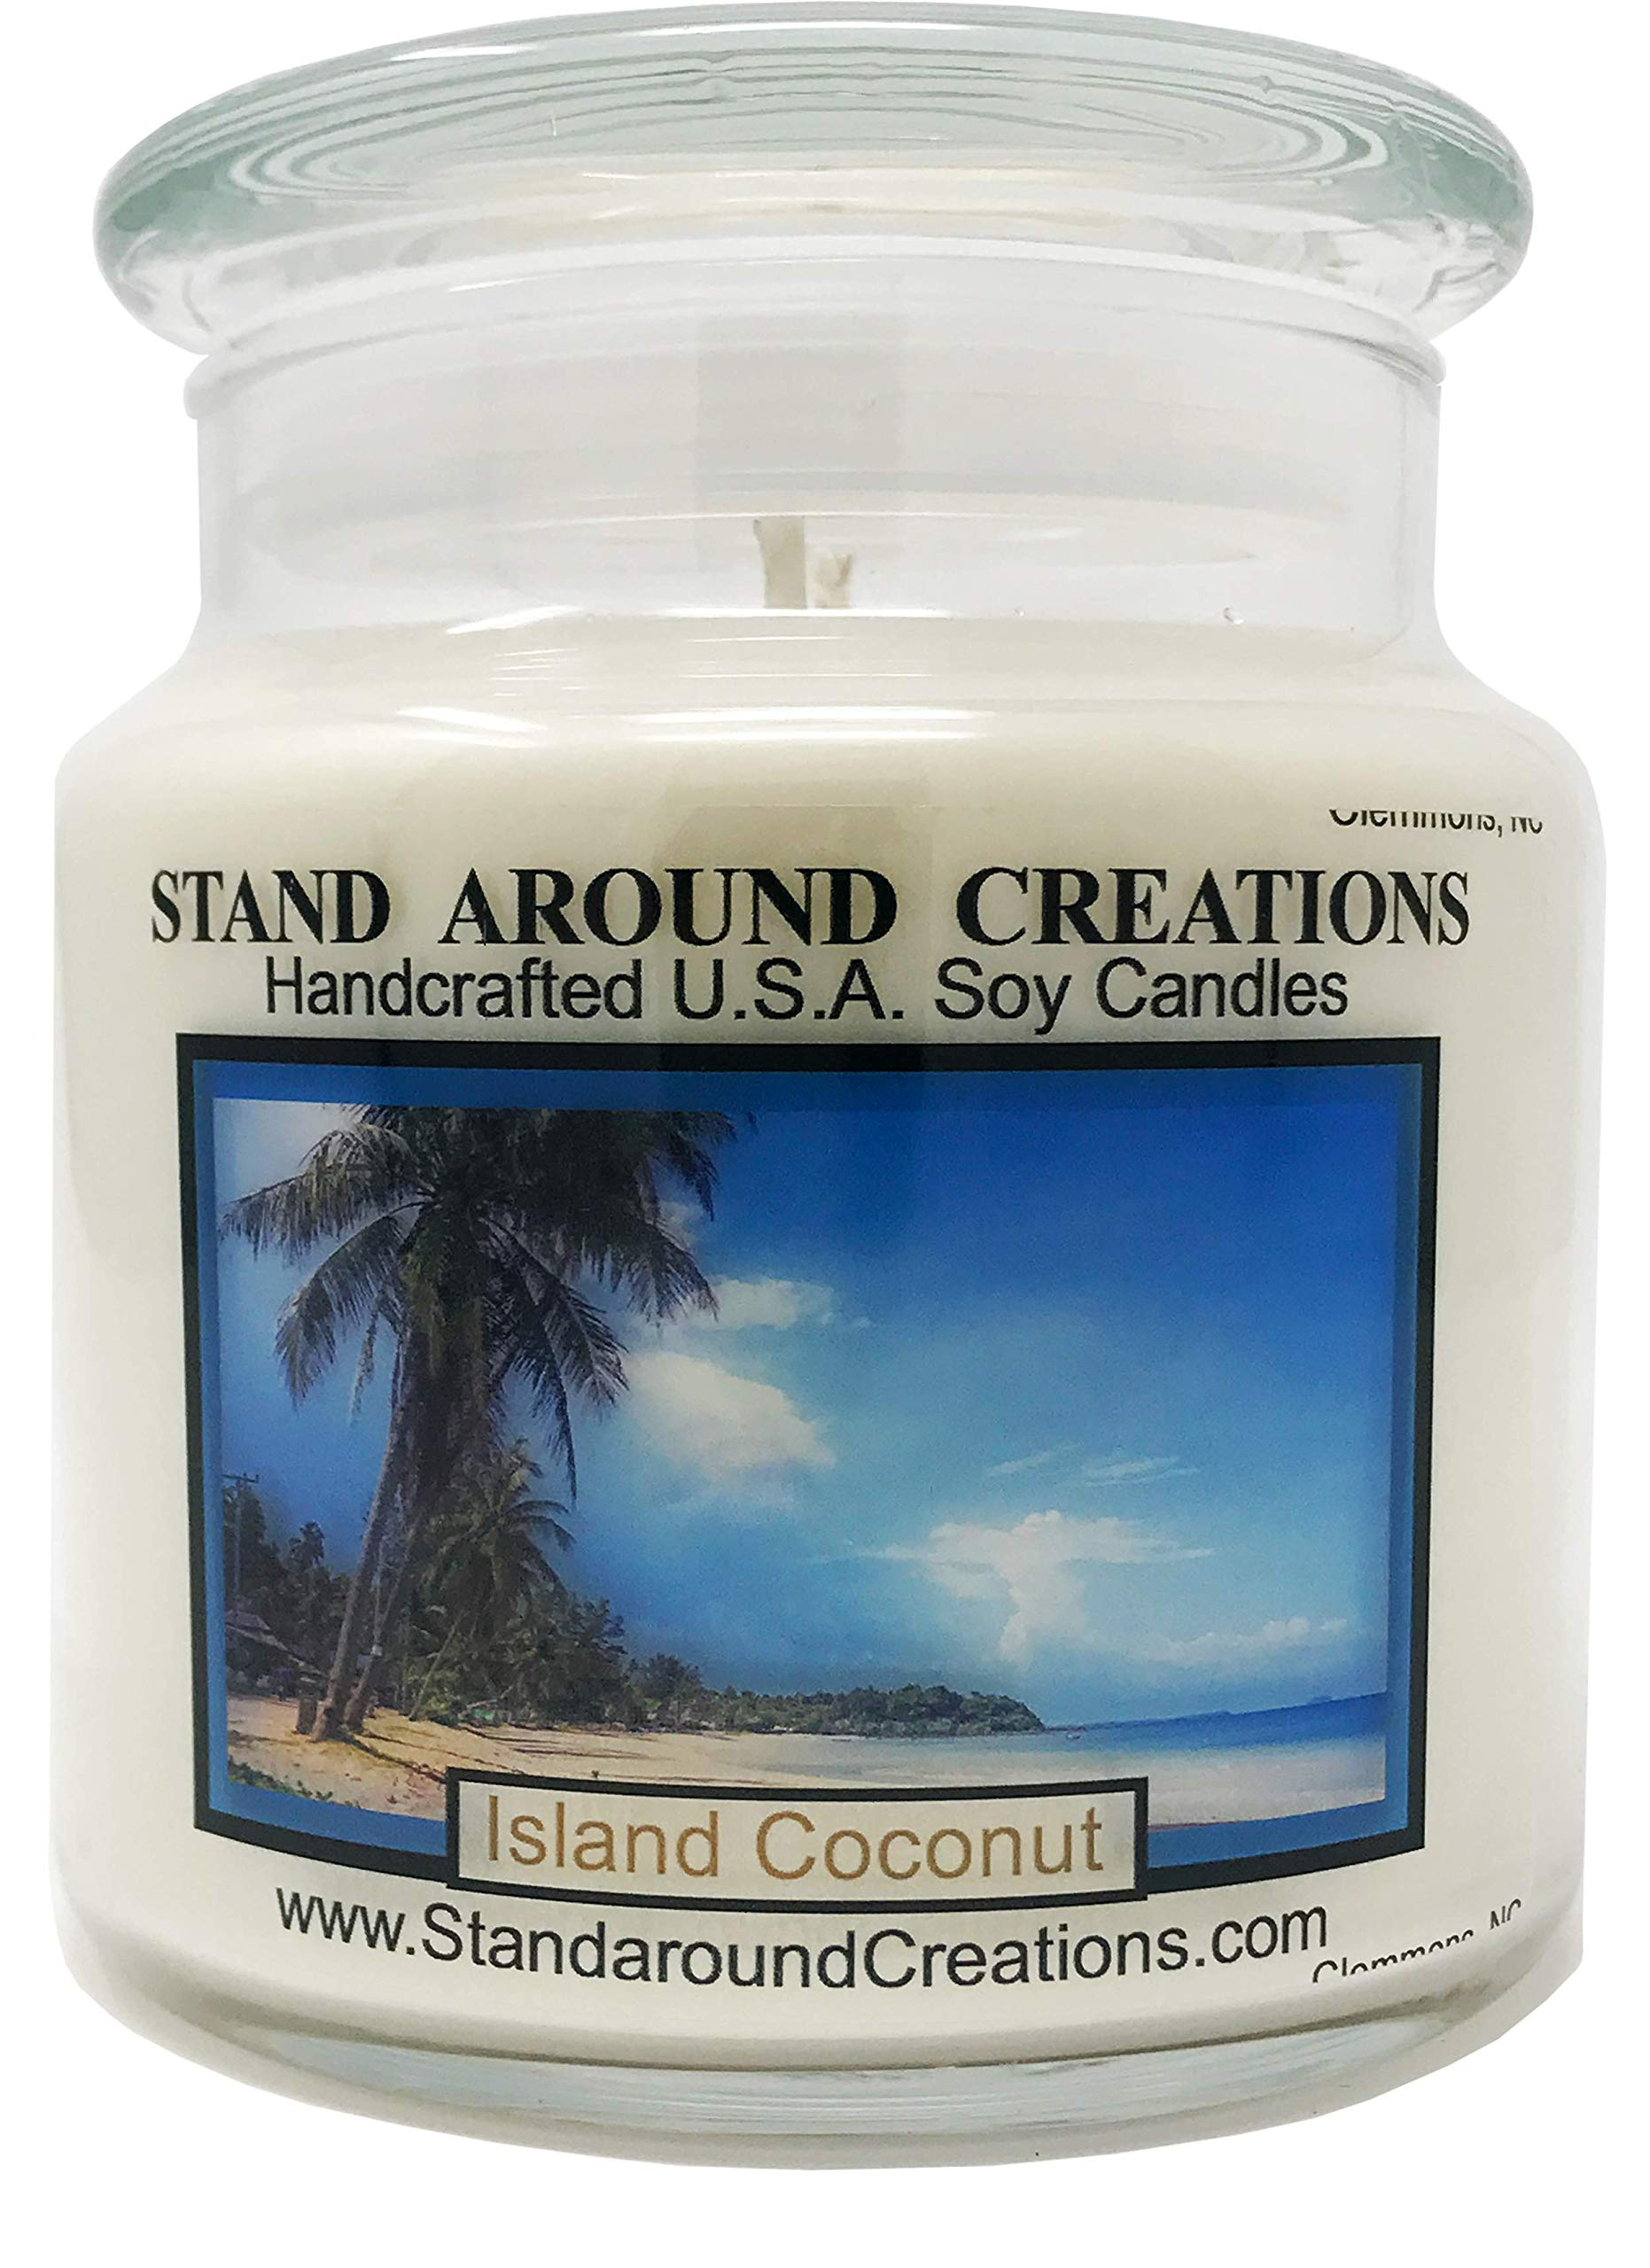 Premium 100% All Natural Soy Apothecary Candle - 16 oz. - Island Coconut: Fresh coconut, sweet pineapple w/a hint of creamy vanilla.